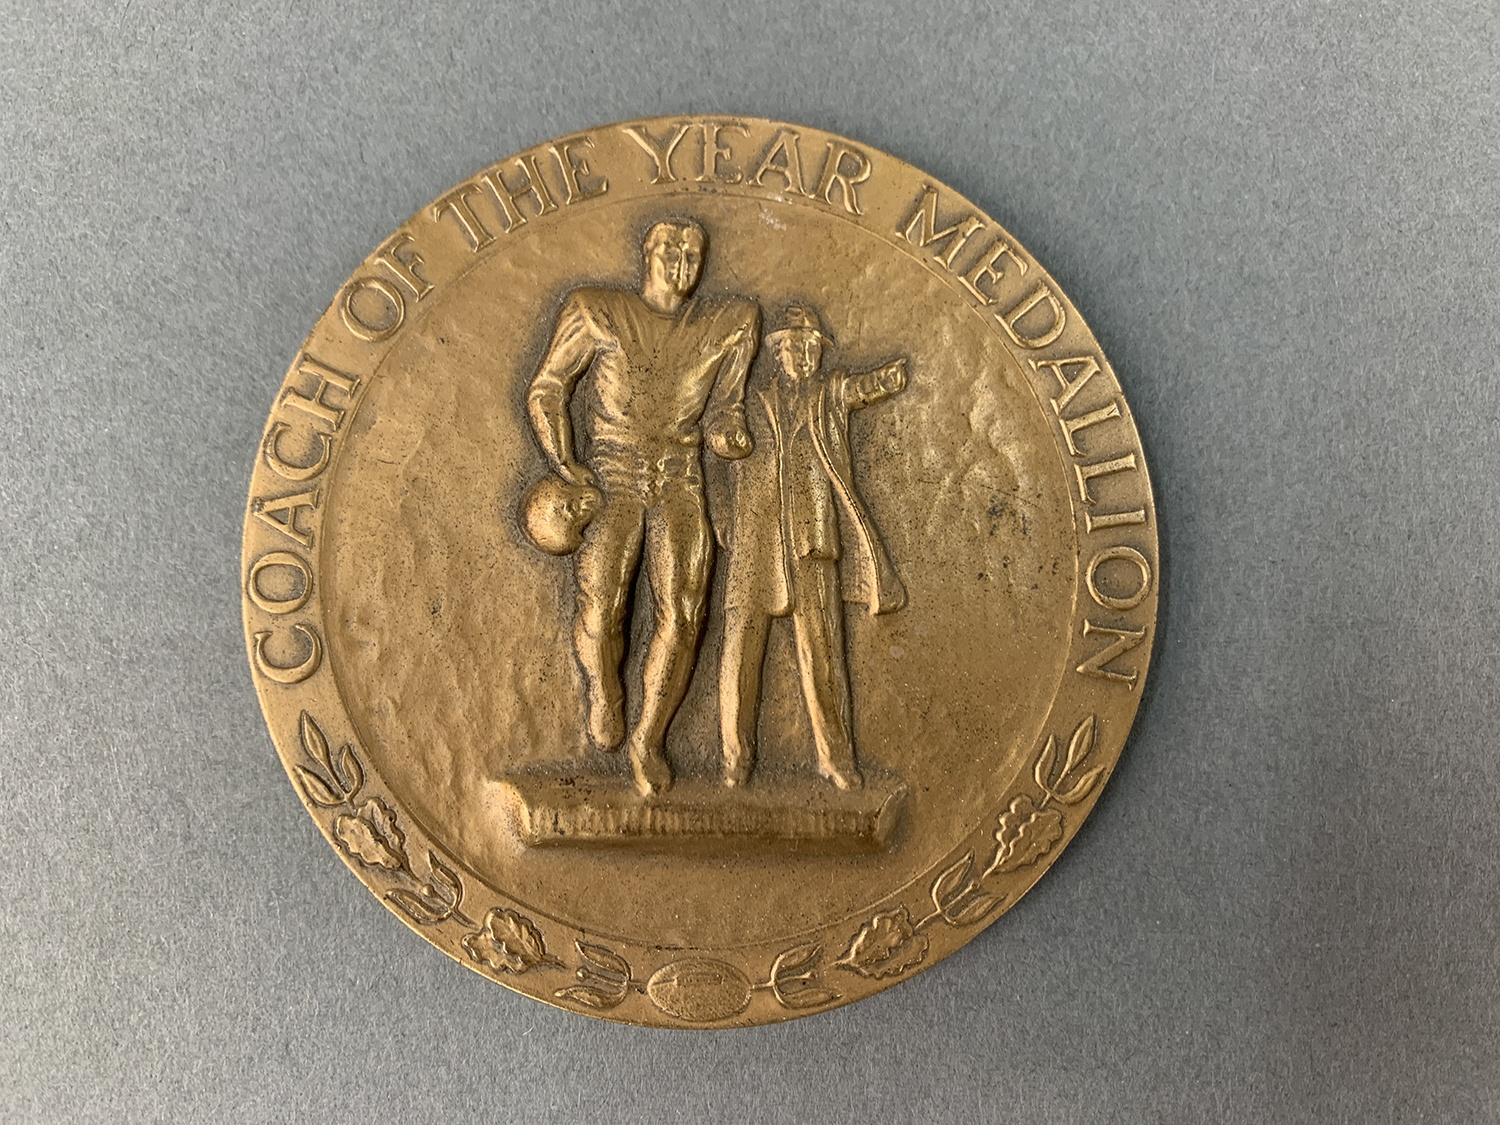 Medallion, Coach of the Year, Awarded by American Football Coaches Assoc., 1976. Courtesy of John Majors.